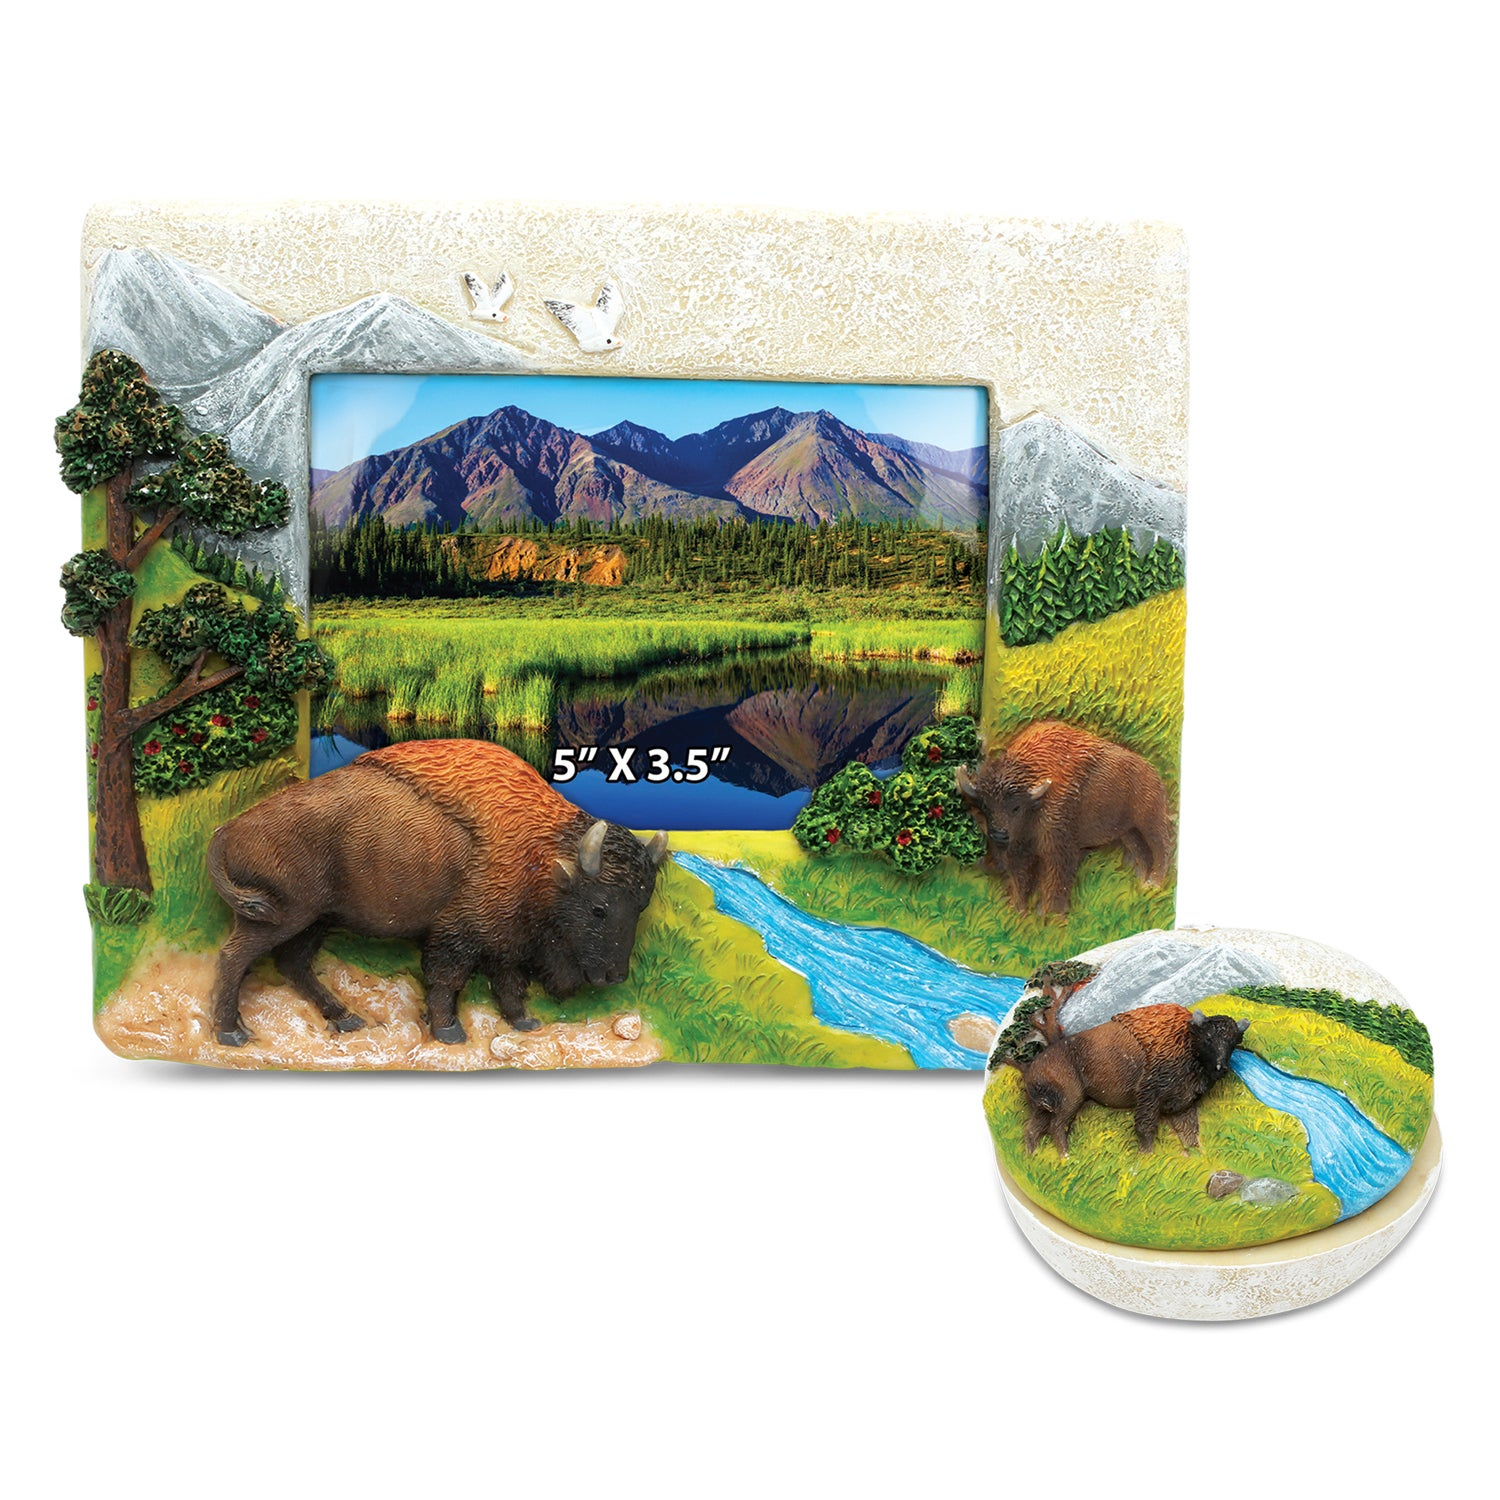 Puzzled Home Decor Value Pack Buffalo Resin Stone collect...